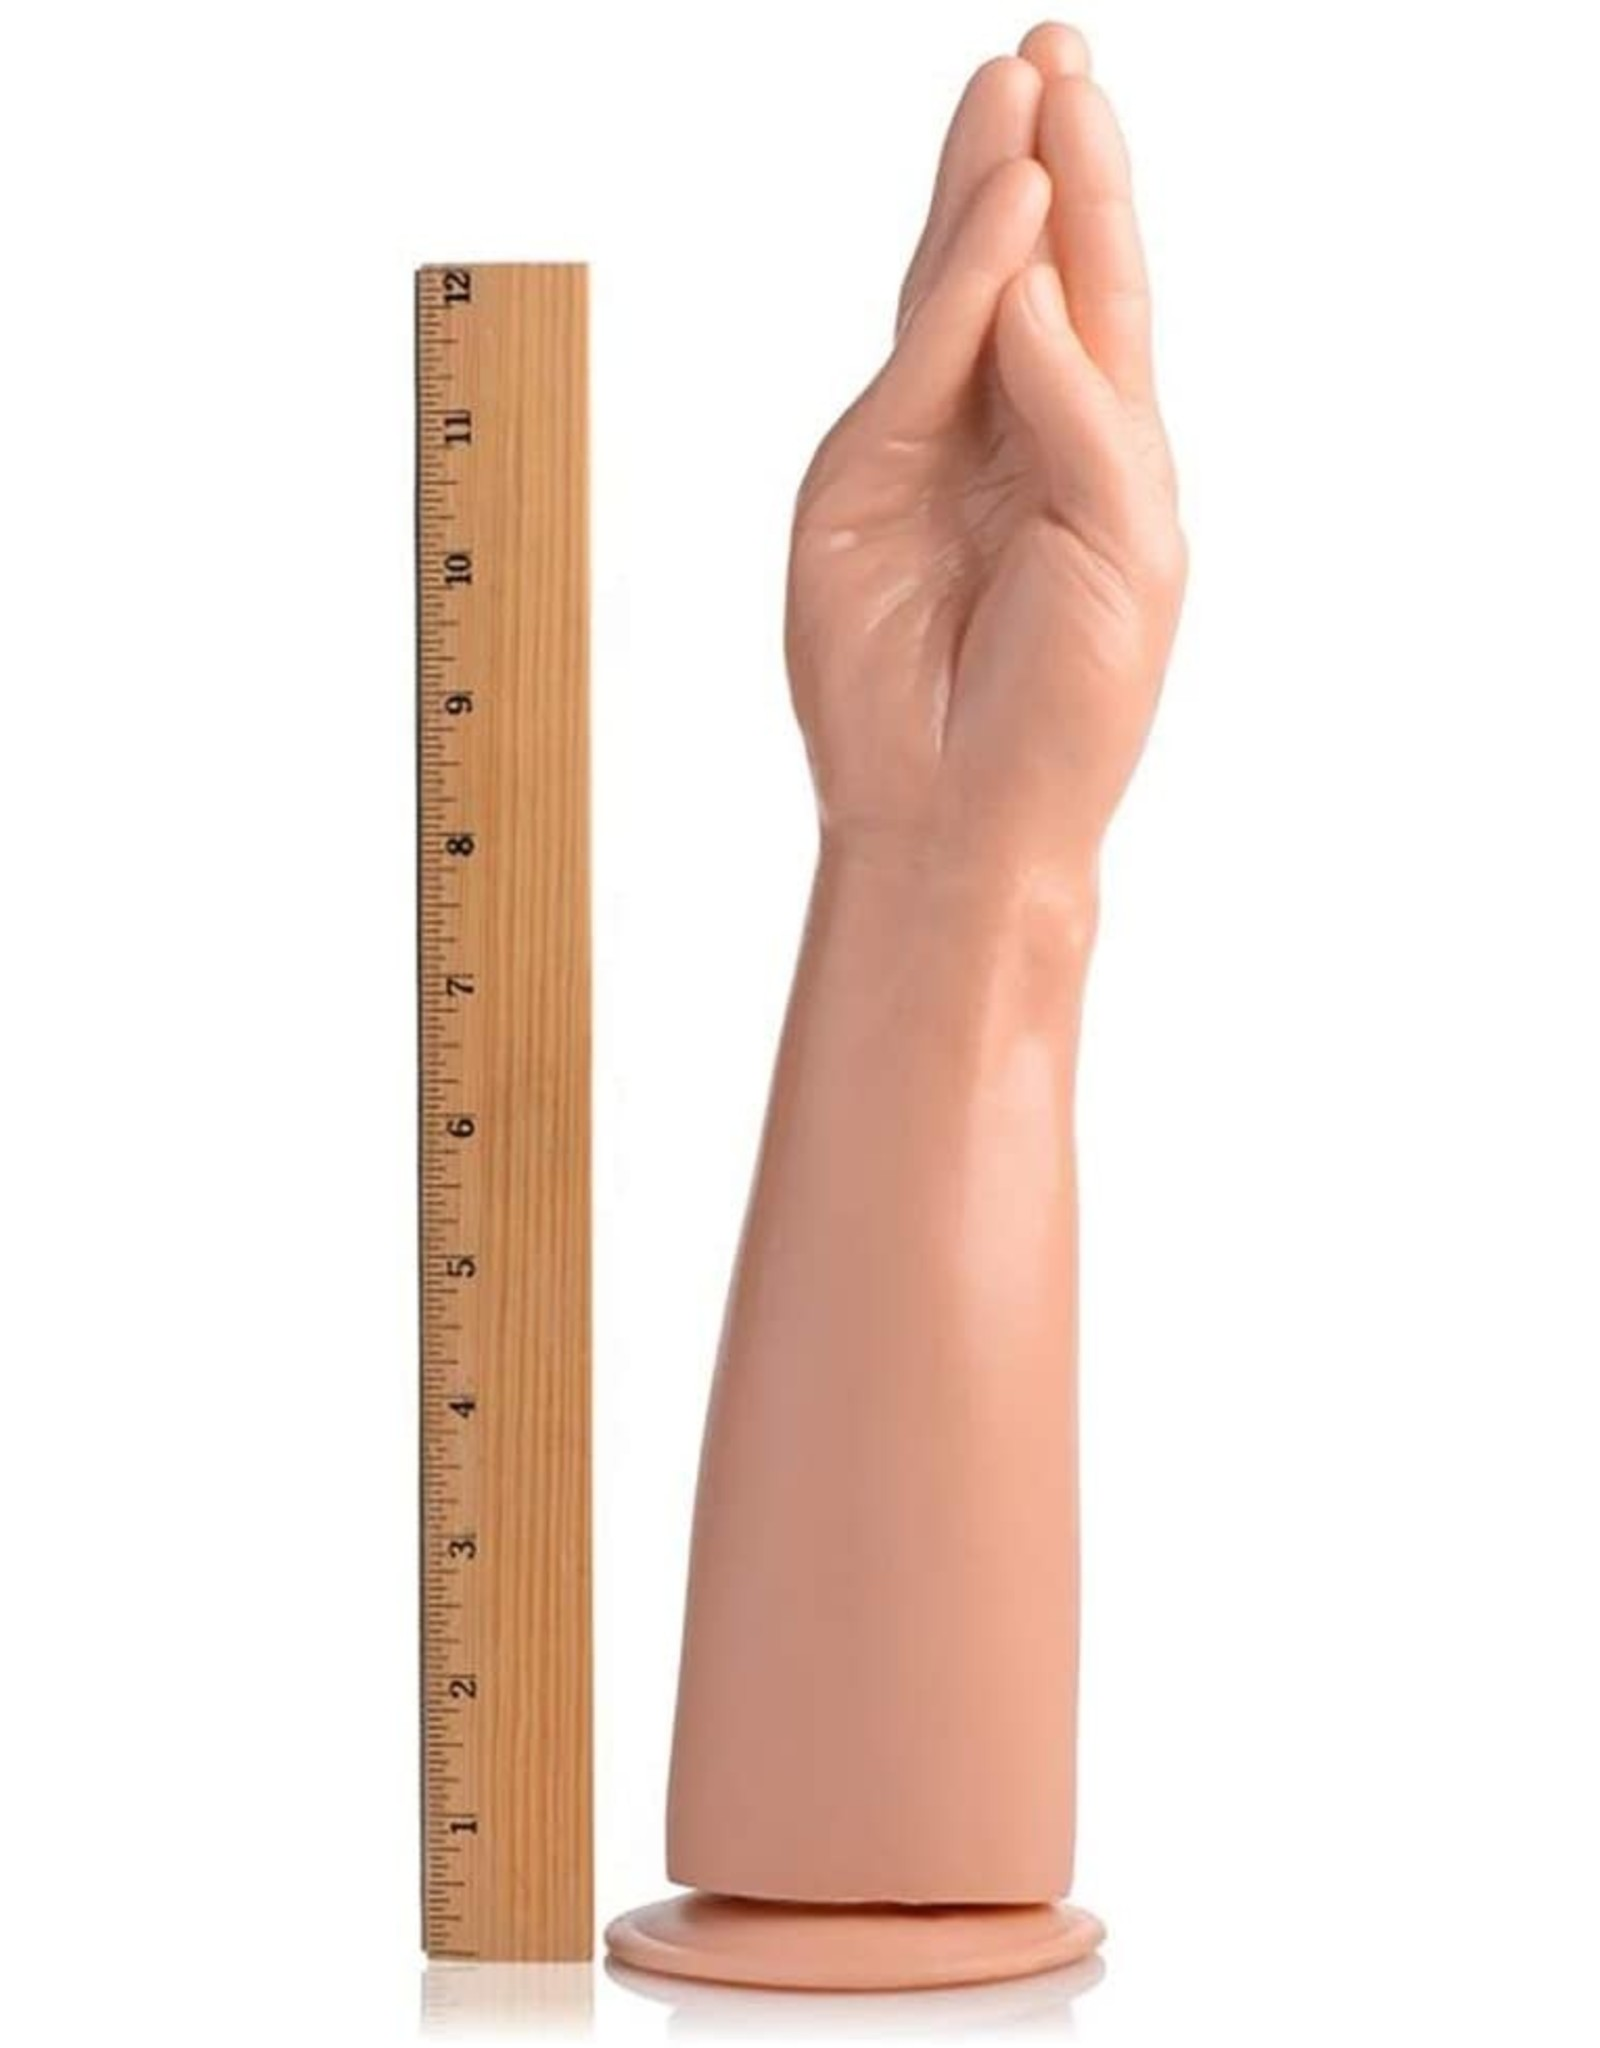 MASTER SERIES THE FISTER HAND & FOREARM DILDO